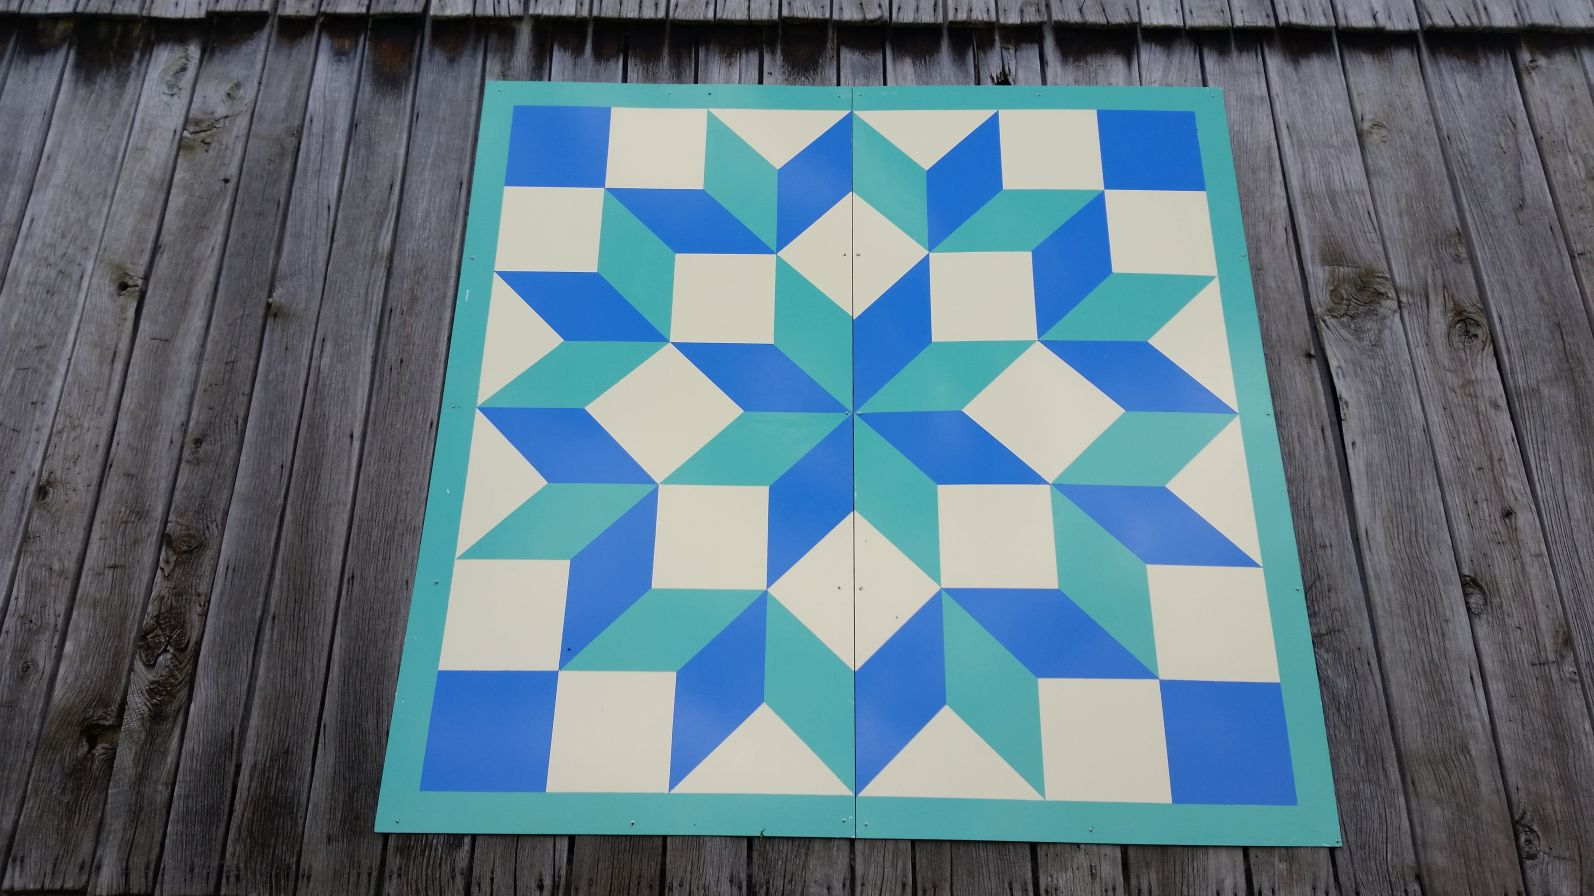 photo about Printable Barn Quilt Patterns referred to as Reduce #33: Carpenters Wheel Barn Quilts inside of Garrett County